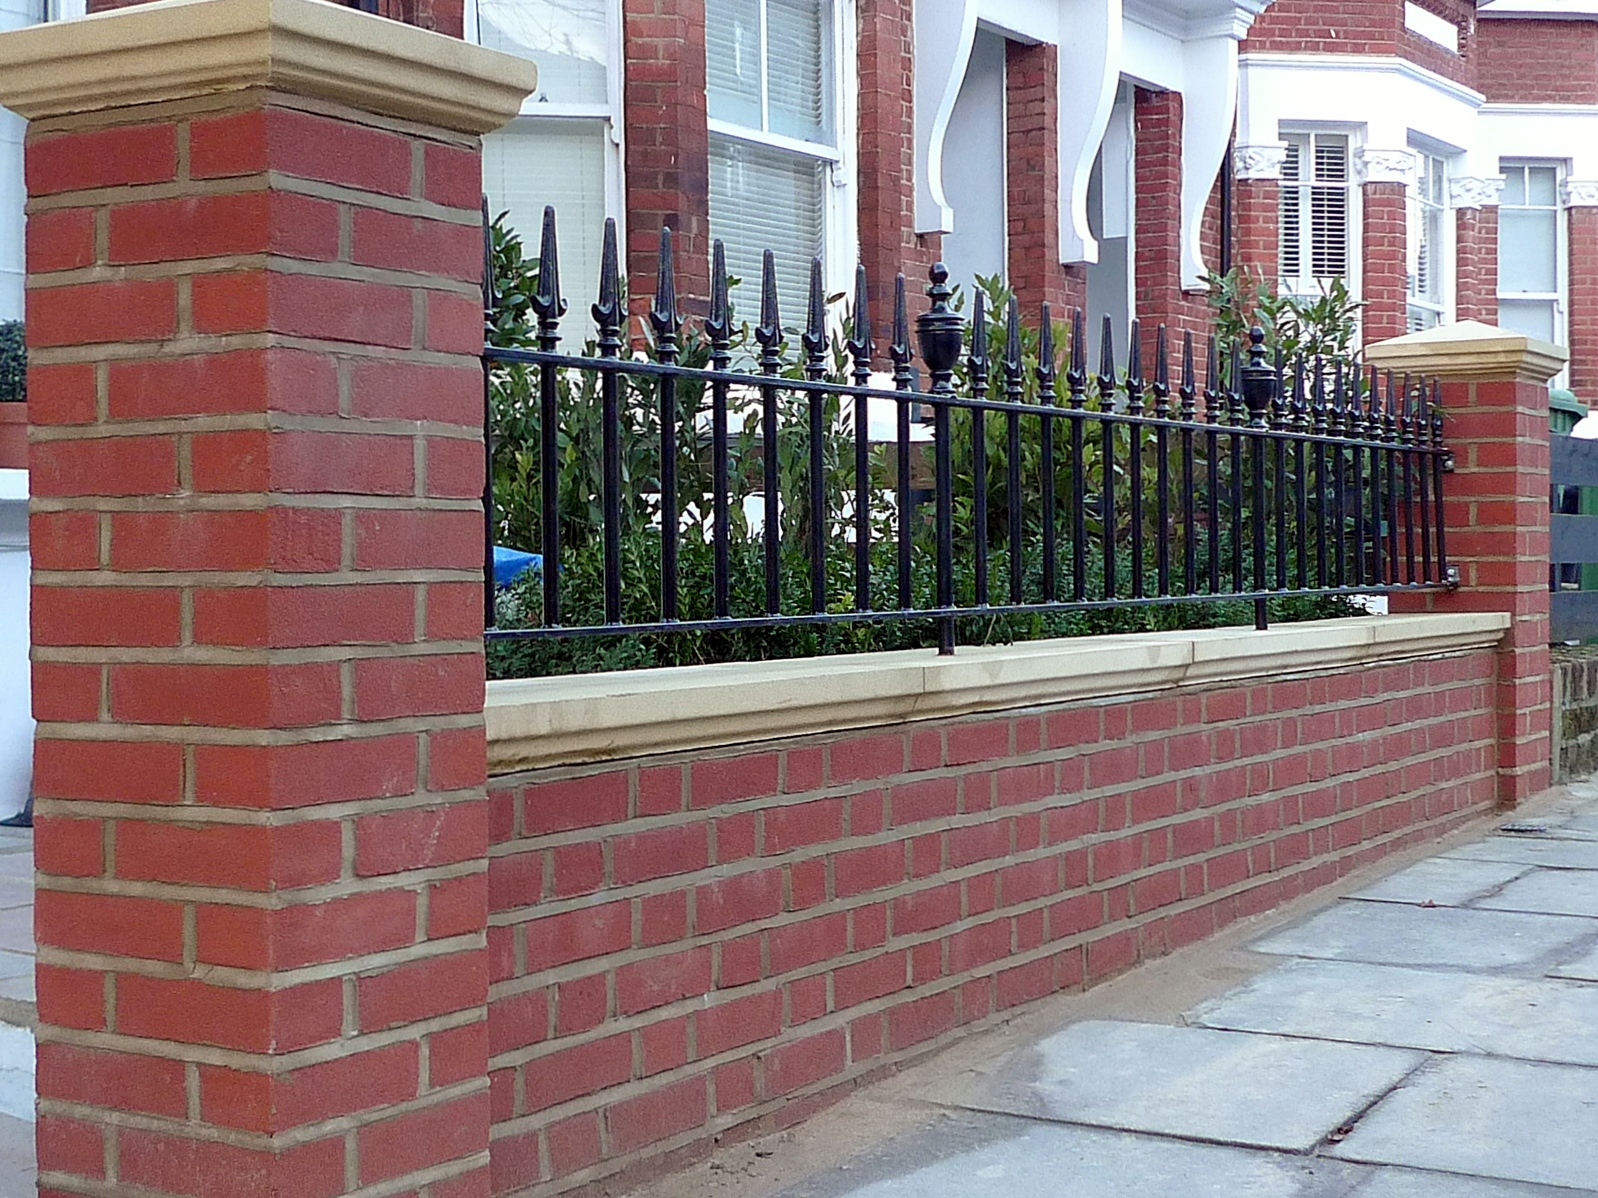 London Red Brick Wall Stone Caps Imperial Rail Victorian Mosaic Path Buxus Planting Hampstead West London (11)